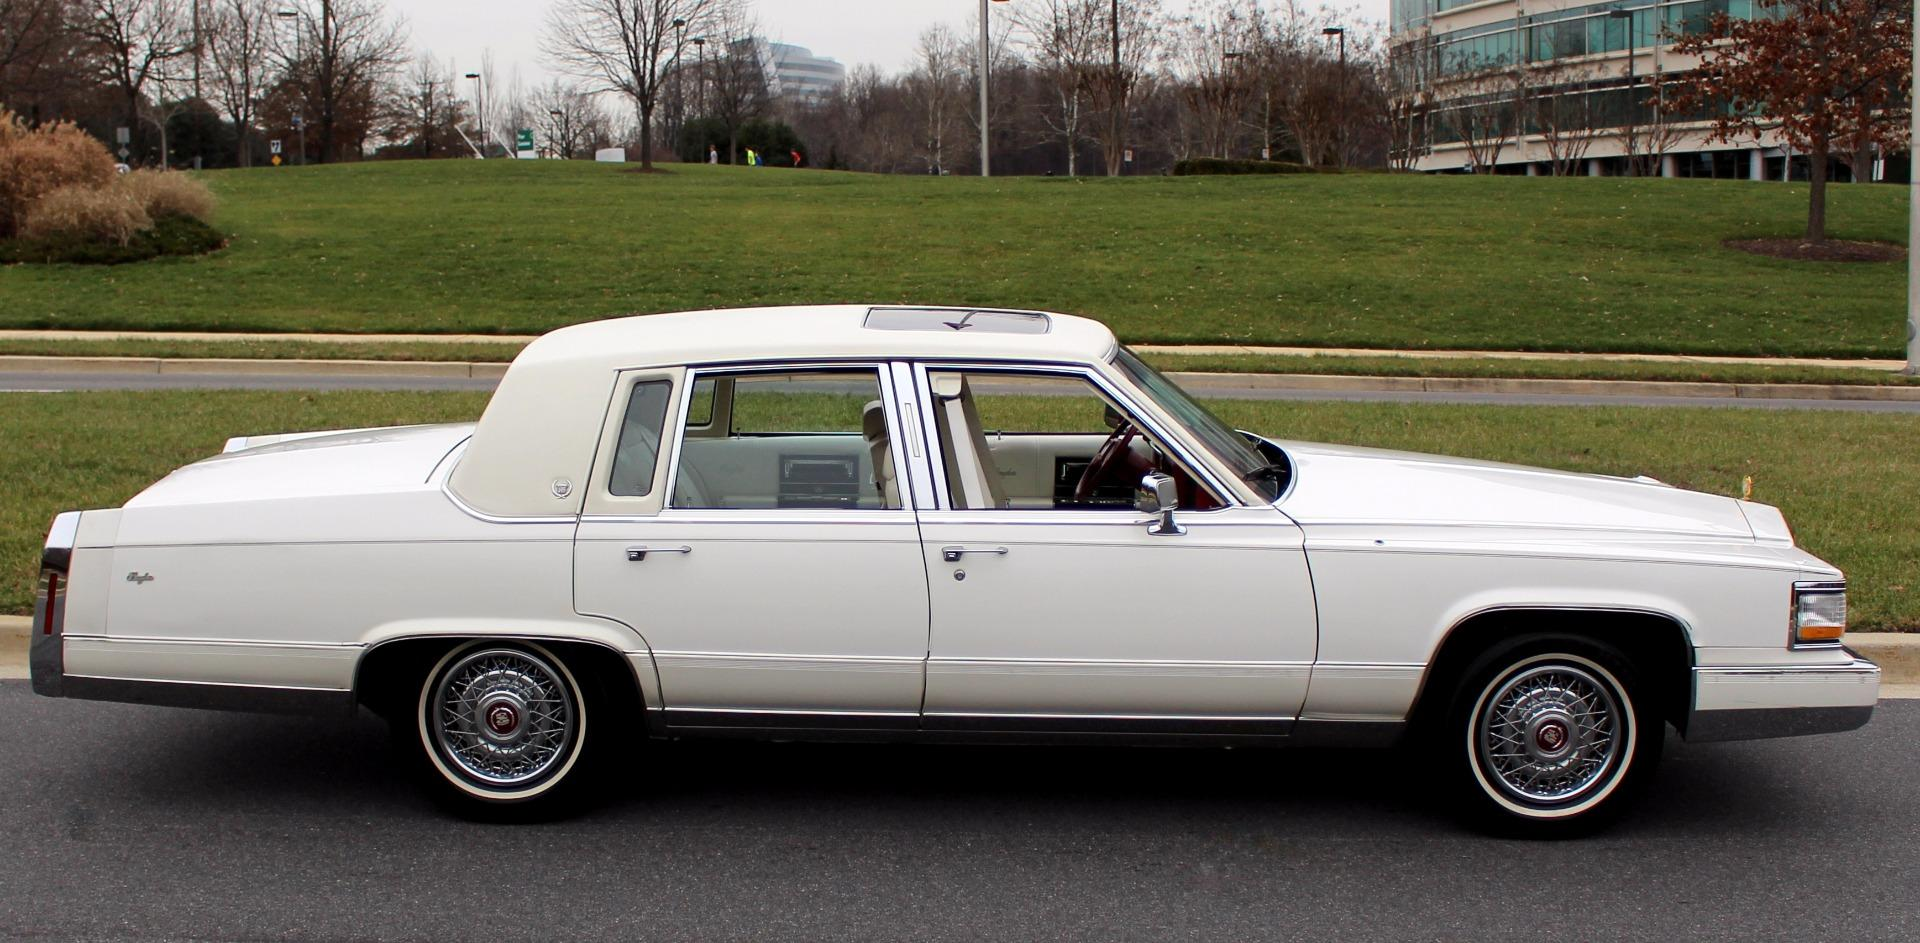 1990 Cadillac Fleetwood Triple White Brougham